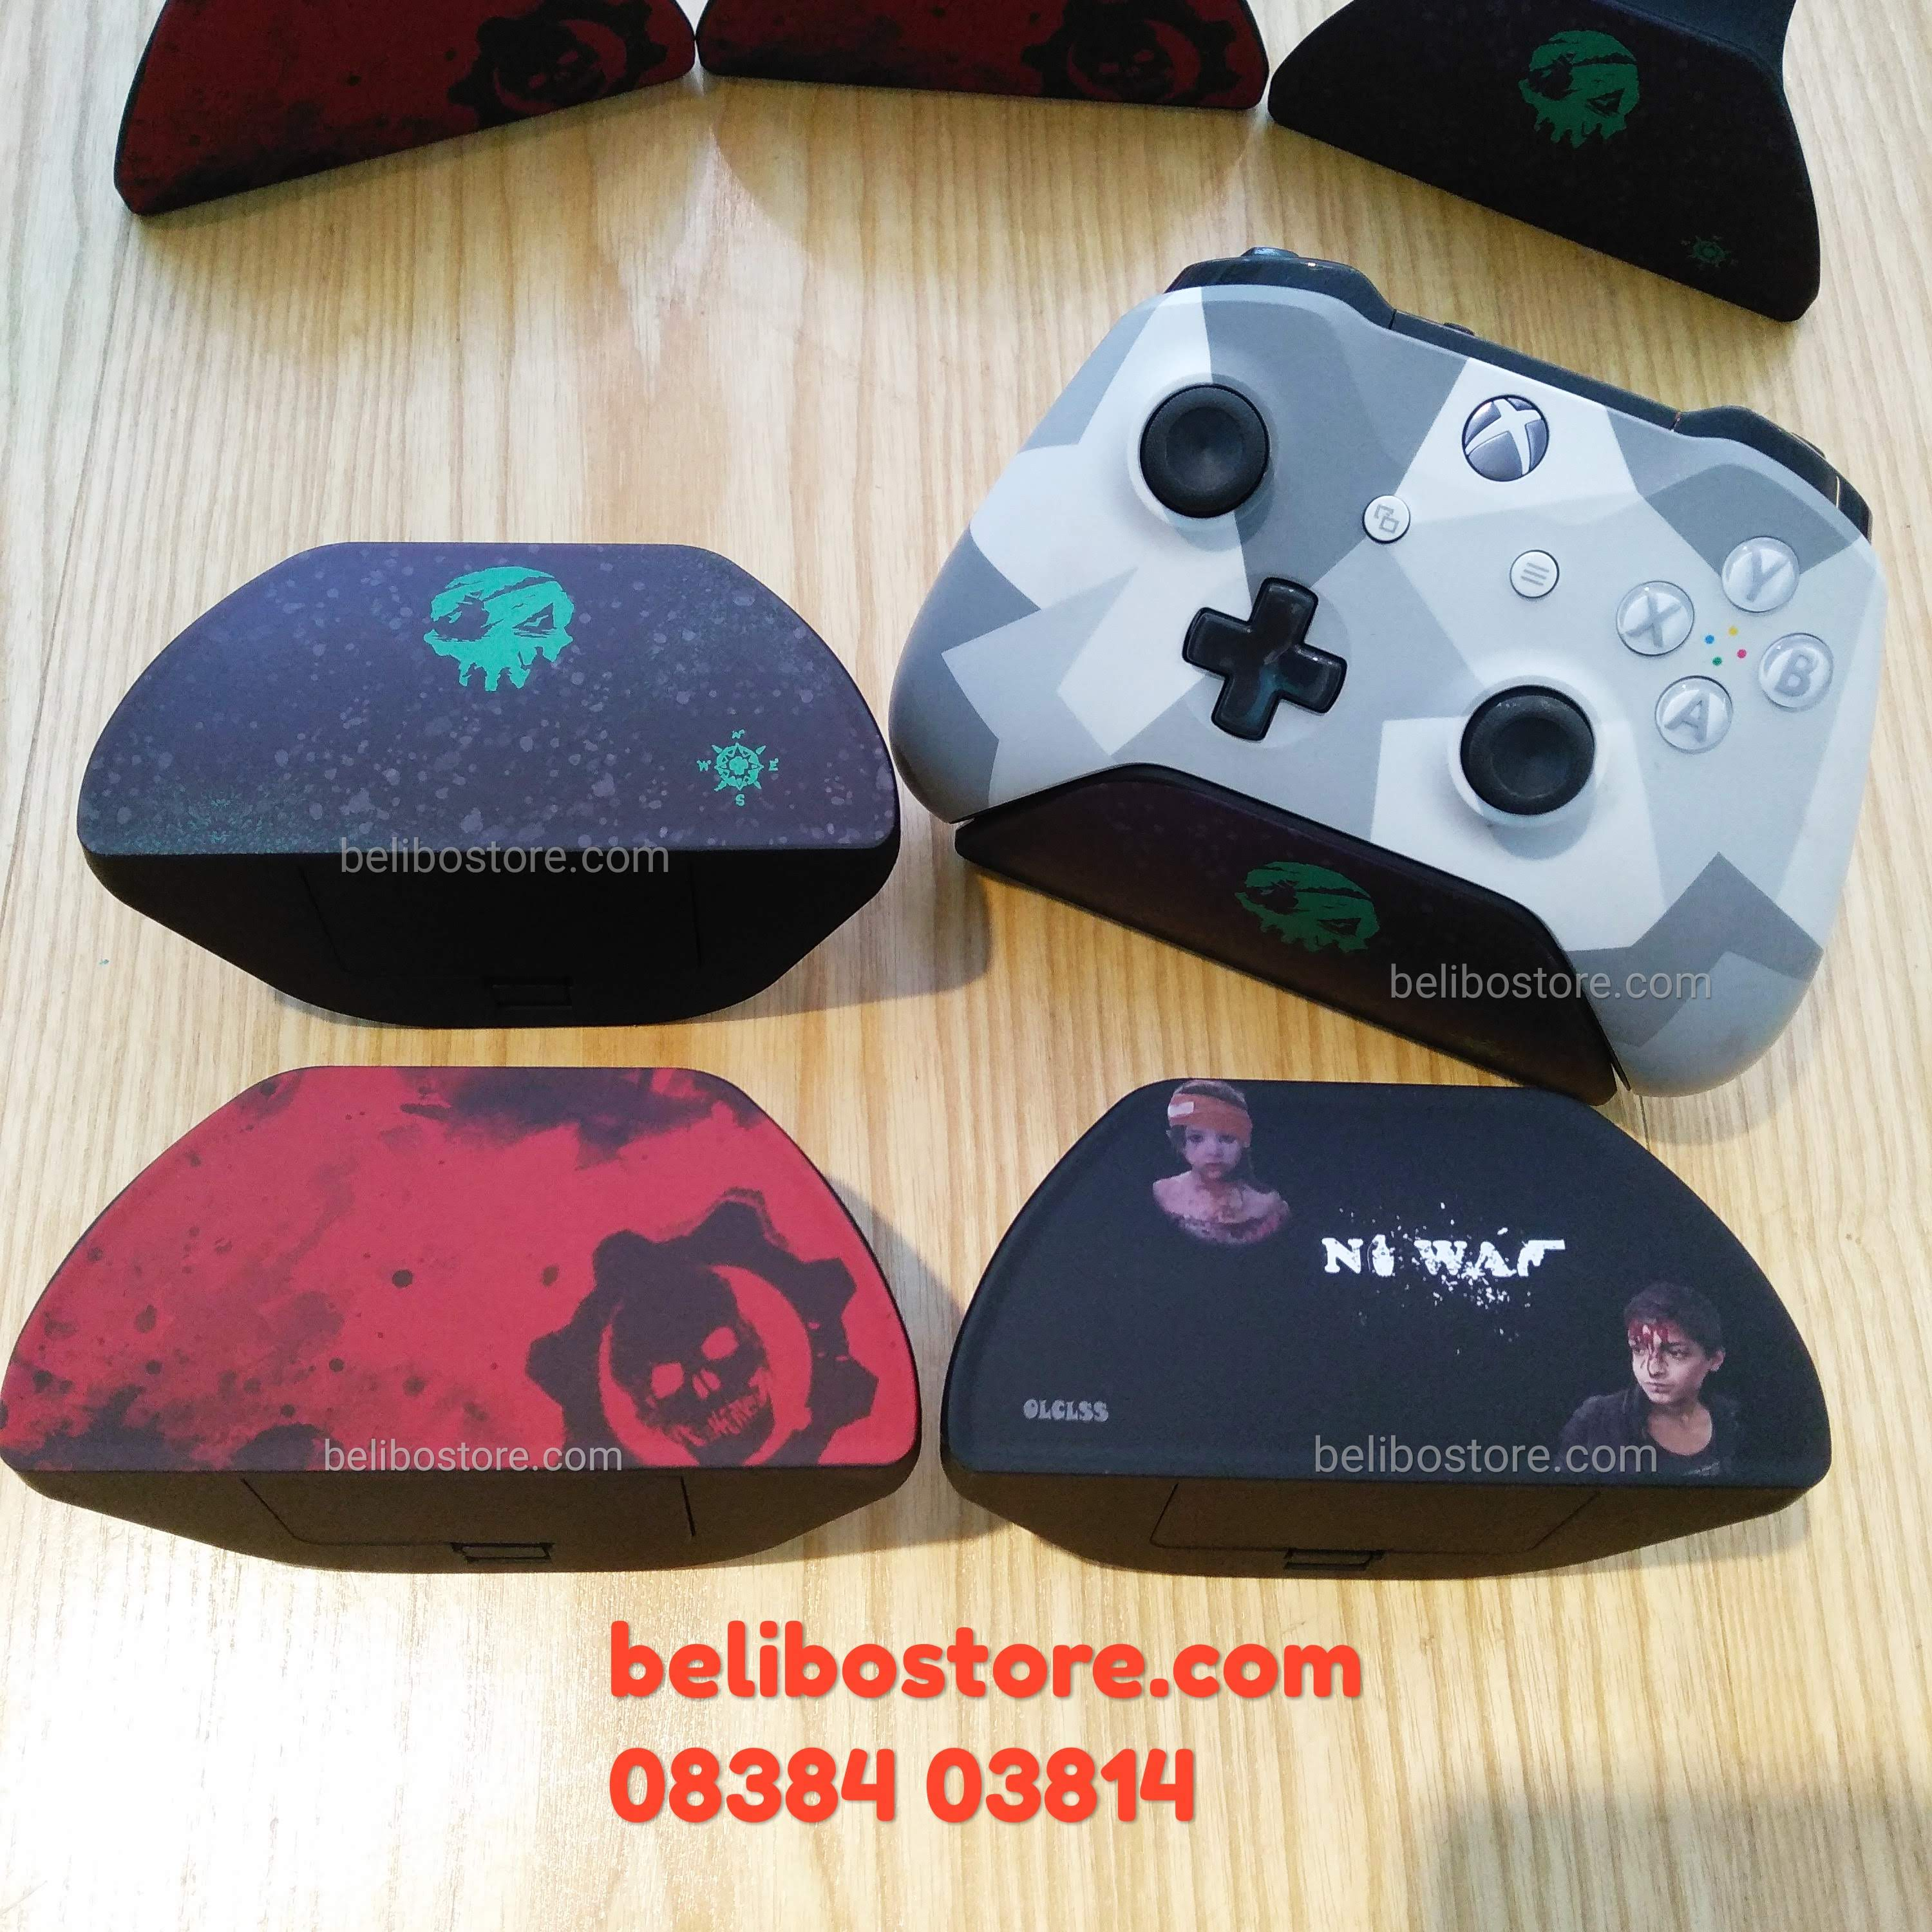 loai-xin-de-nhua-bay-tay-cam-choi-game-xbox-one-xbox-one-s-ps4